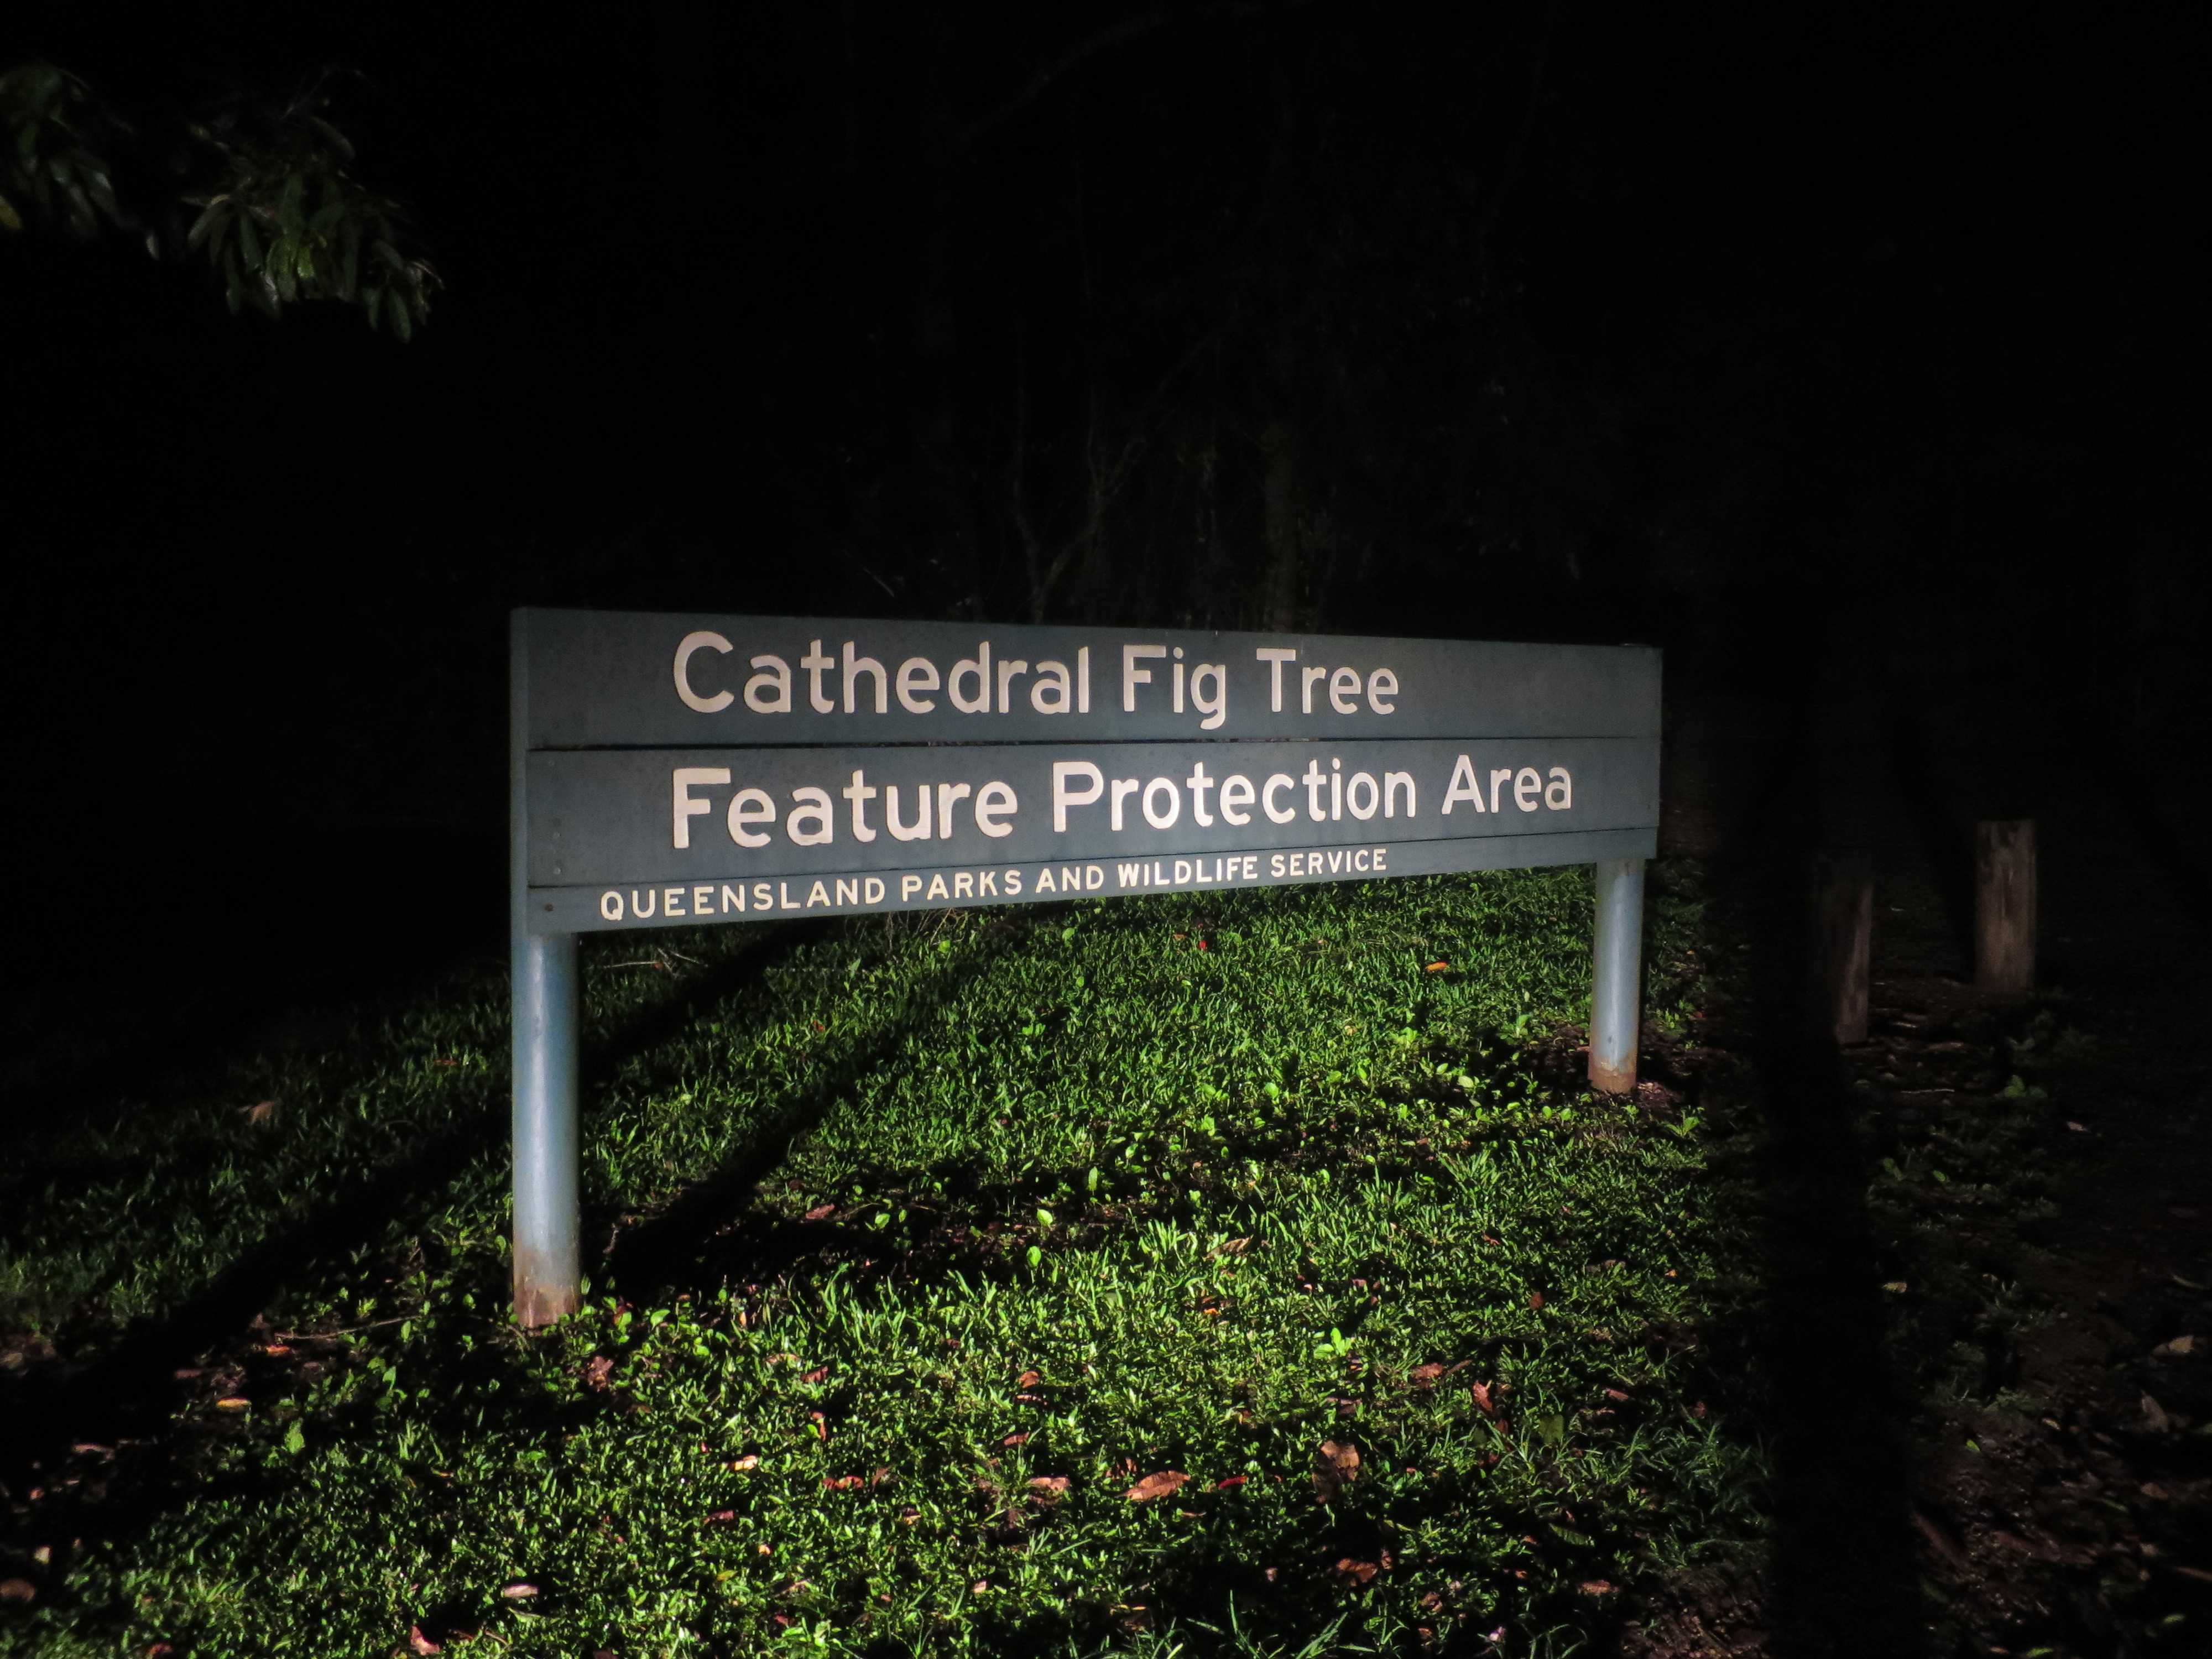 Cathedral Fig Tree(聖堂の樹)の看板